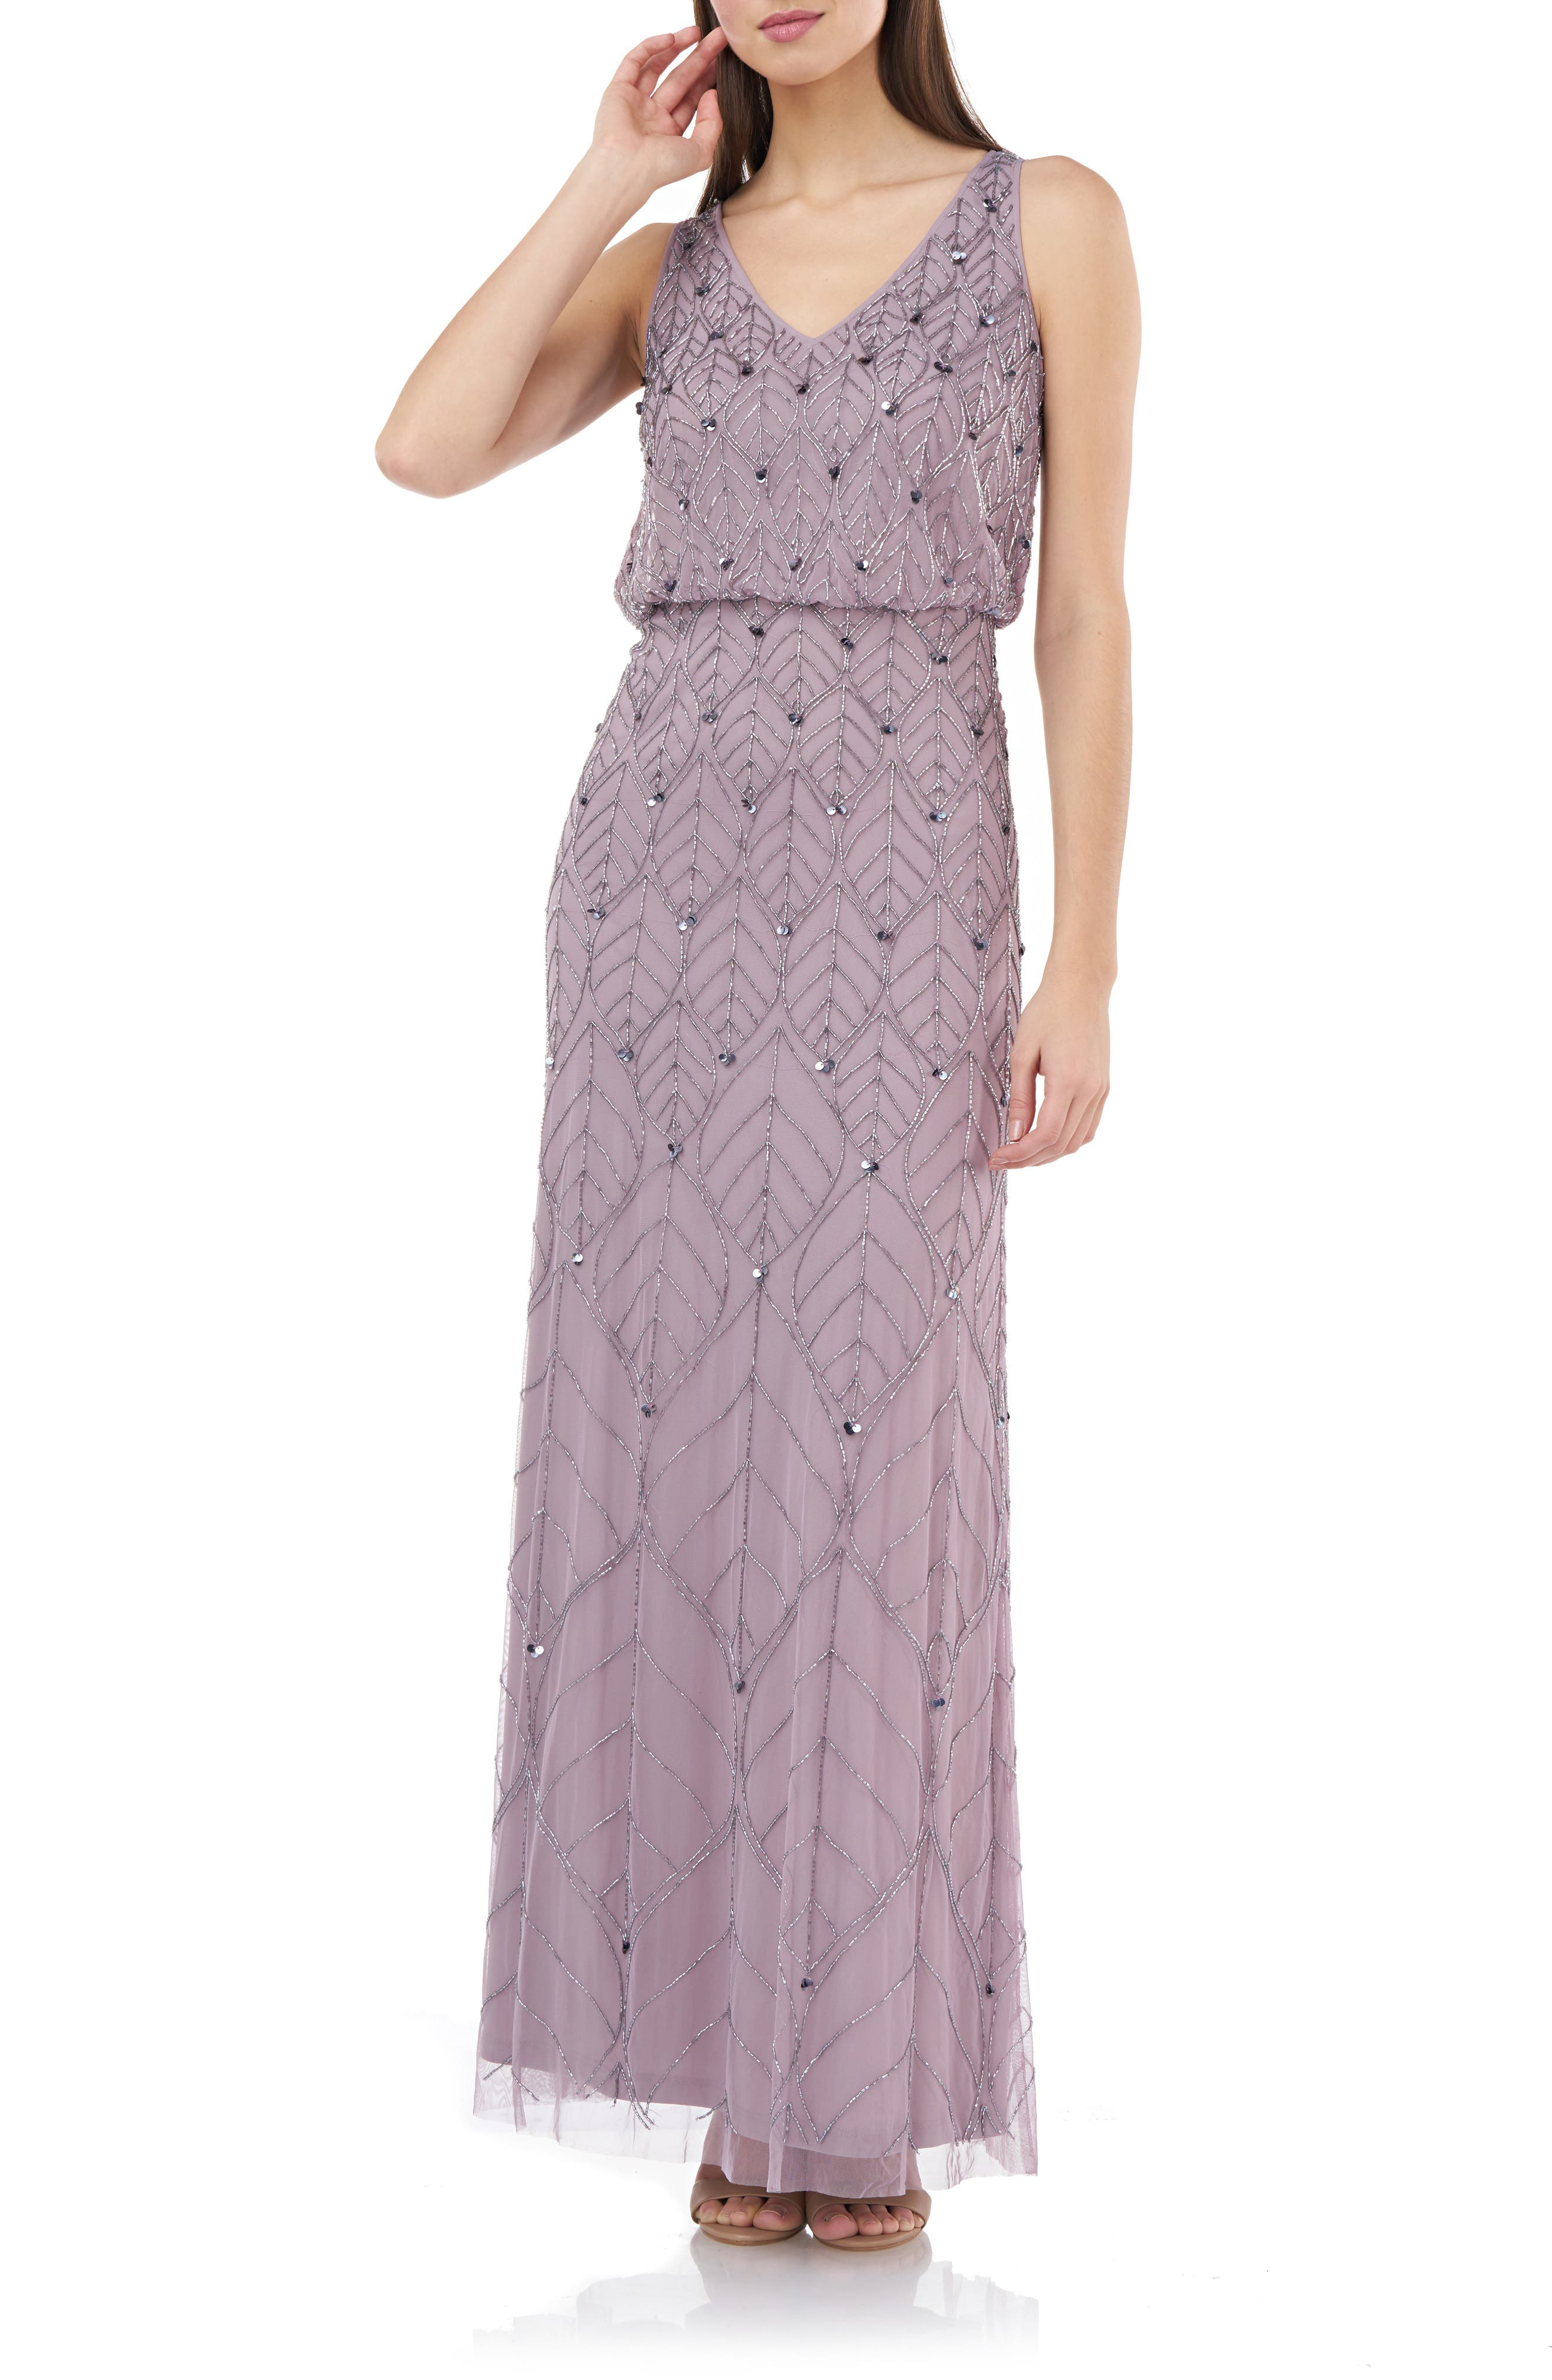 1920s Evening Dresses & Formal Gowns Womens Js Collections Beaded Leaf Blouson Gown $298.00 AT vintagedancer.com